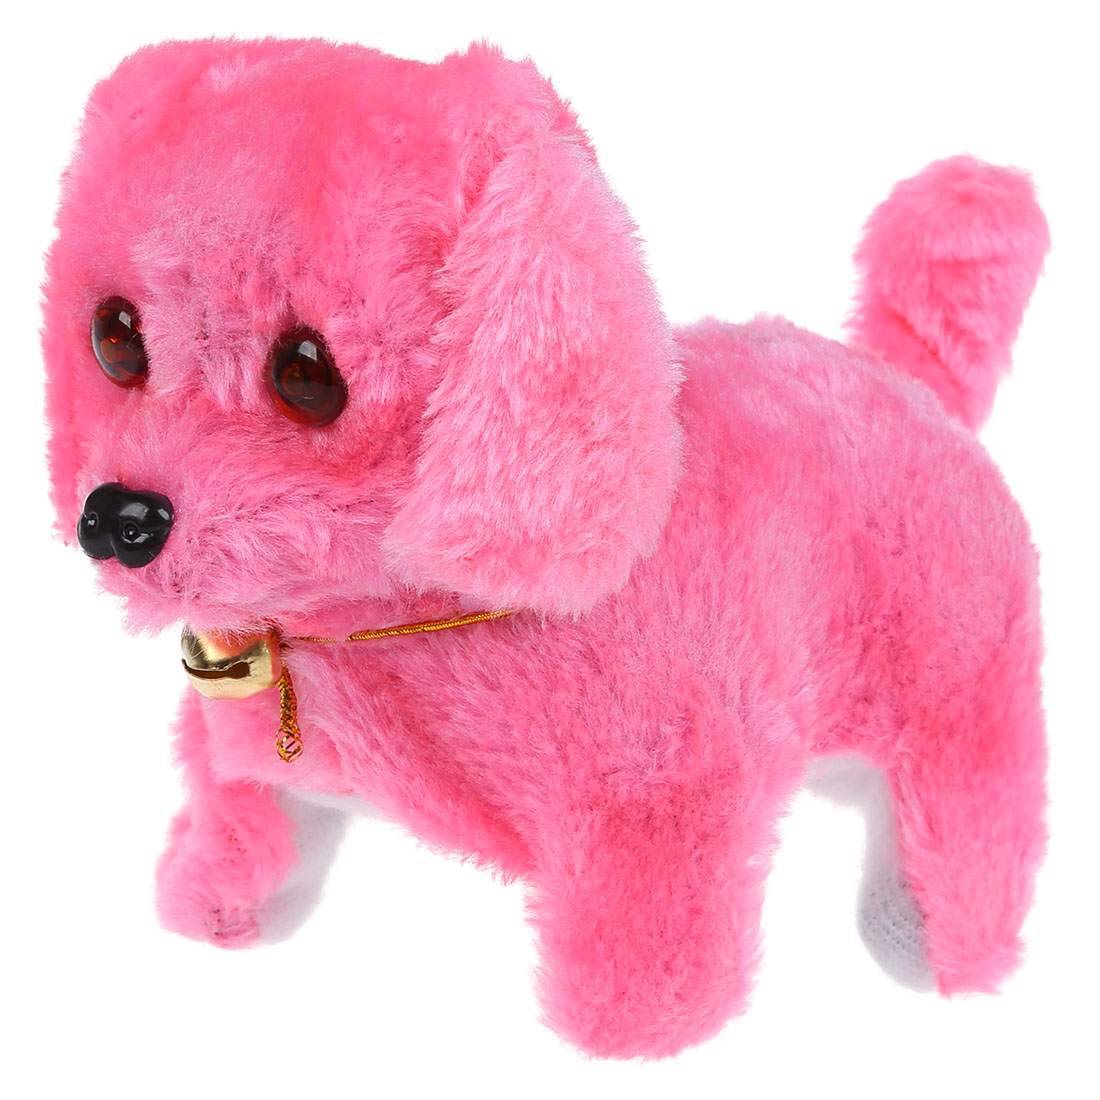 Cute Pink Plush Neck Bell Walking Barking Electronic Dog Kids Child Toy Gift Relieving Heat And Thirst.